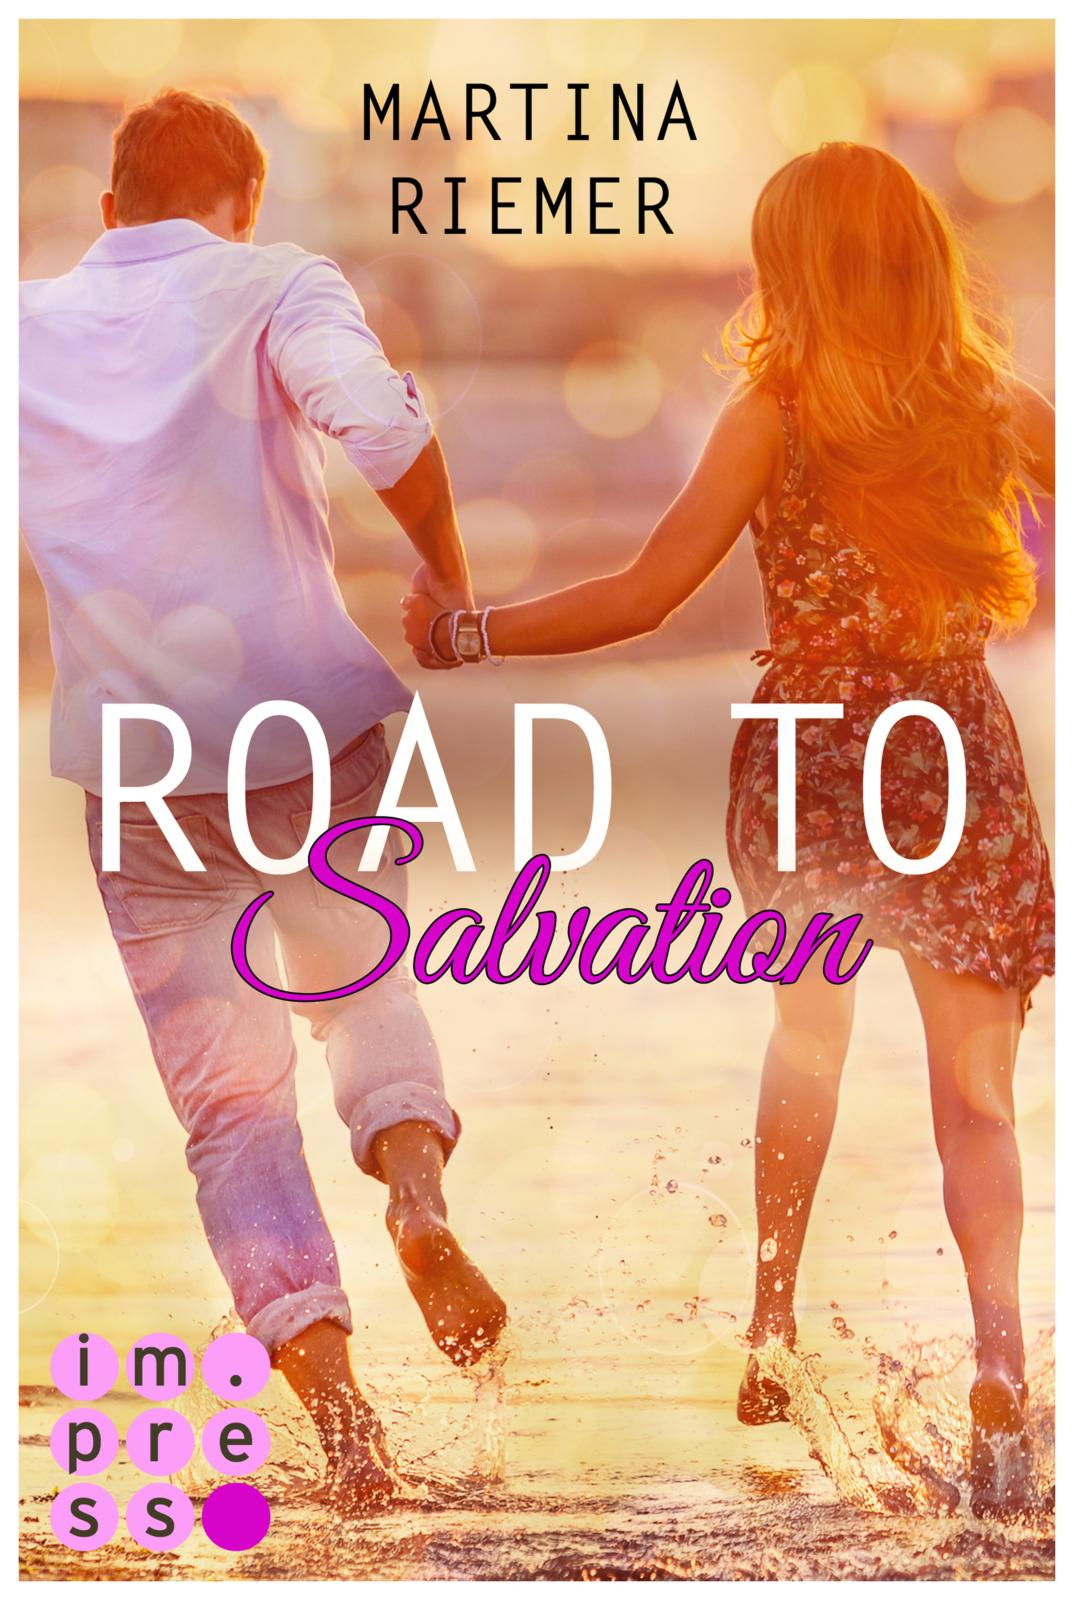 Buch 'Road to Salvation' von Martina Riemer